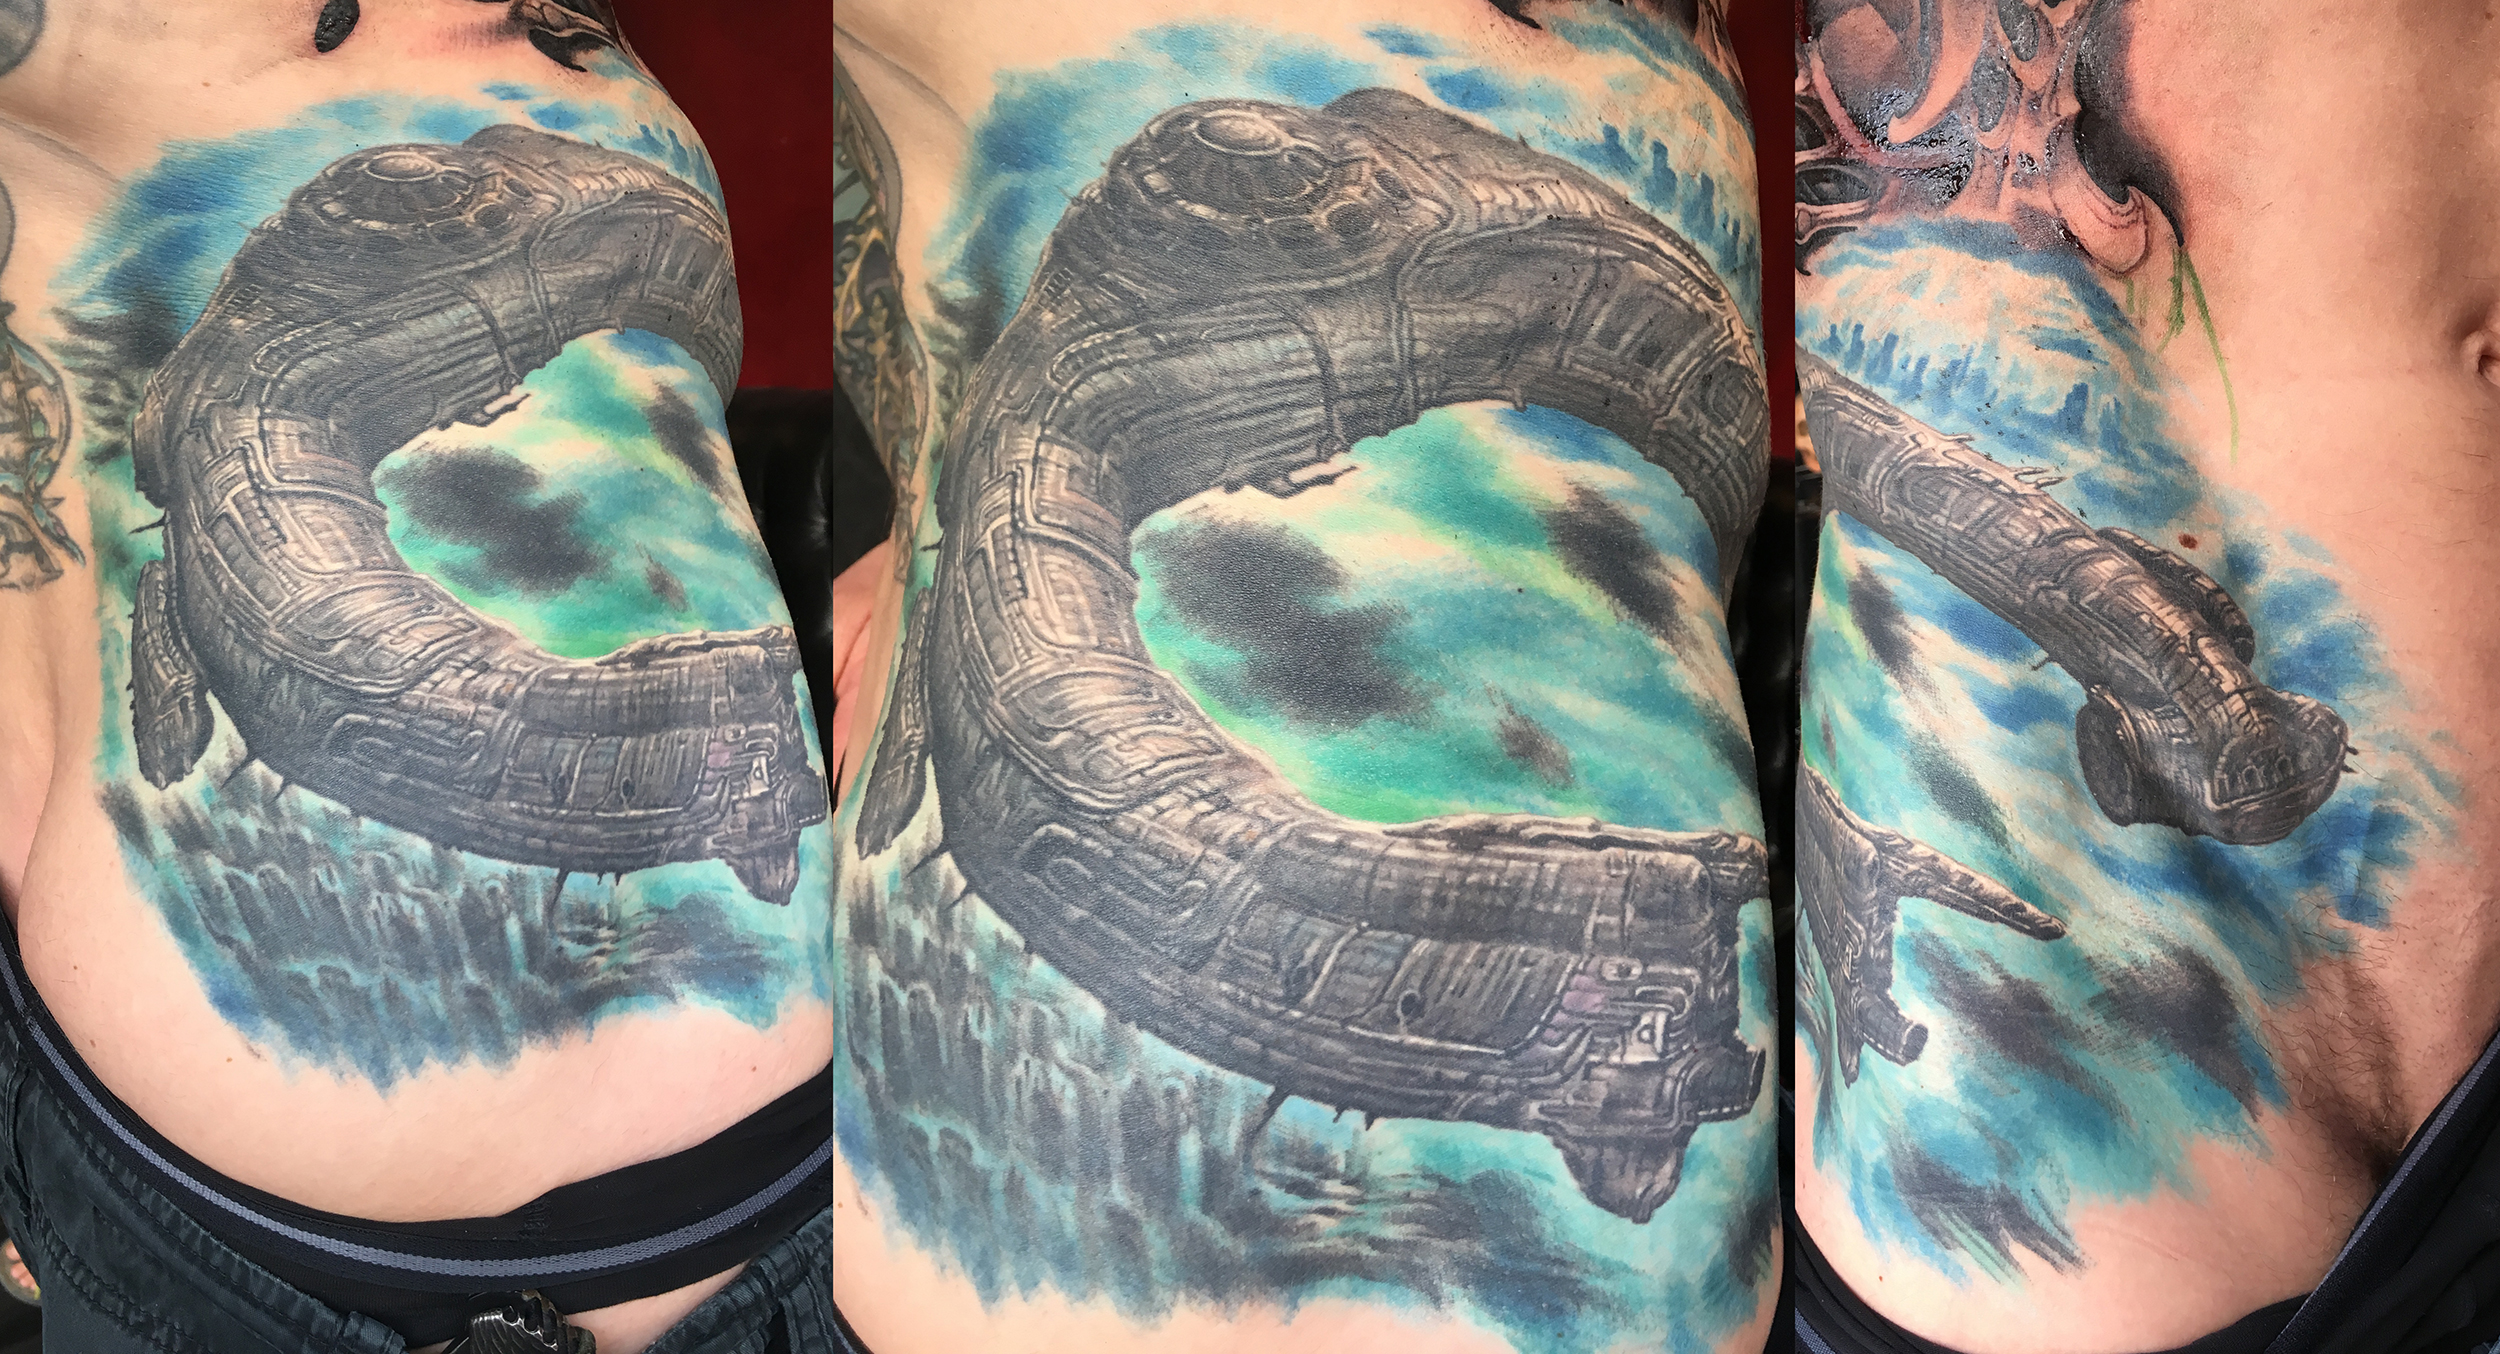 Color Realism Tattoo of Spaceship from Prometheus, (healed photo) on hip